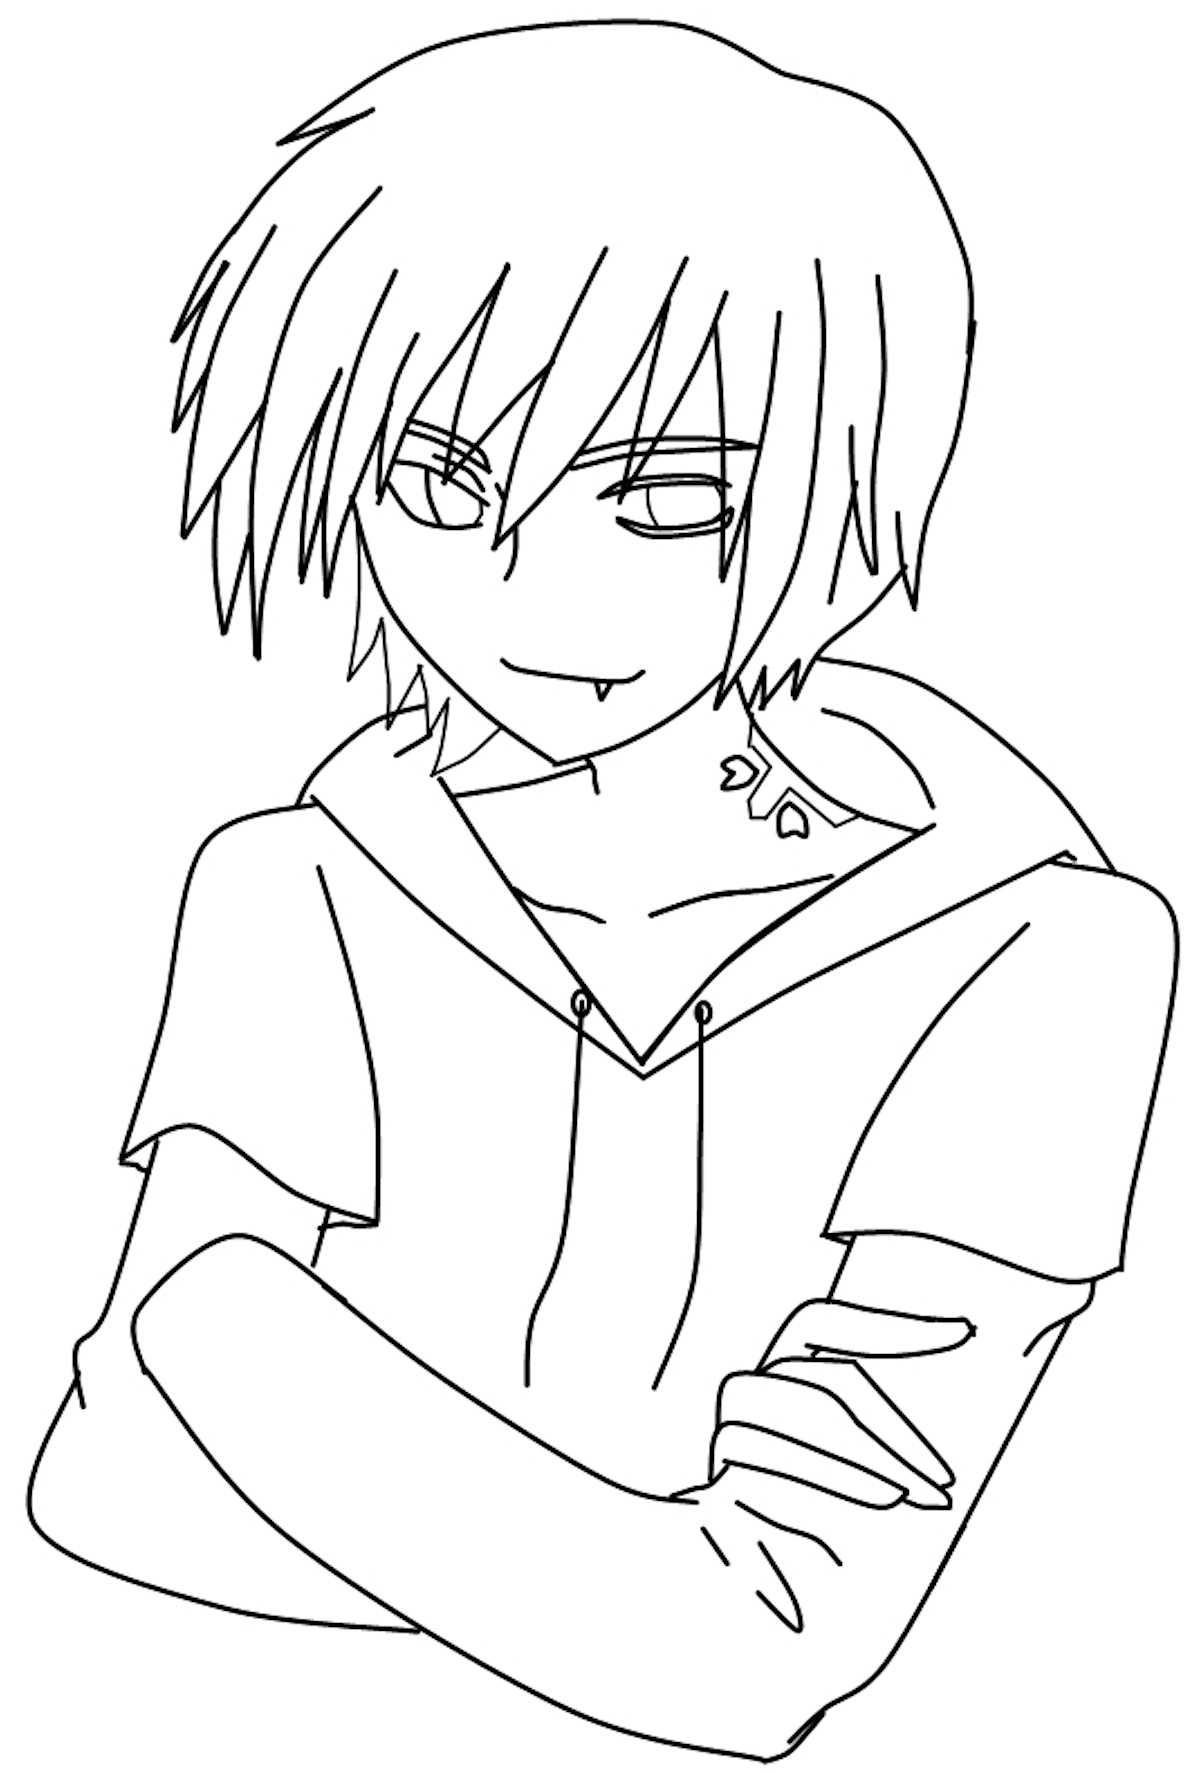 coloring pages anime top 10 anime characters coloring pages printable and free anime coloring pages